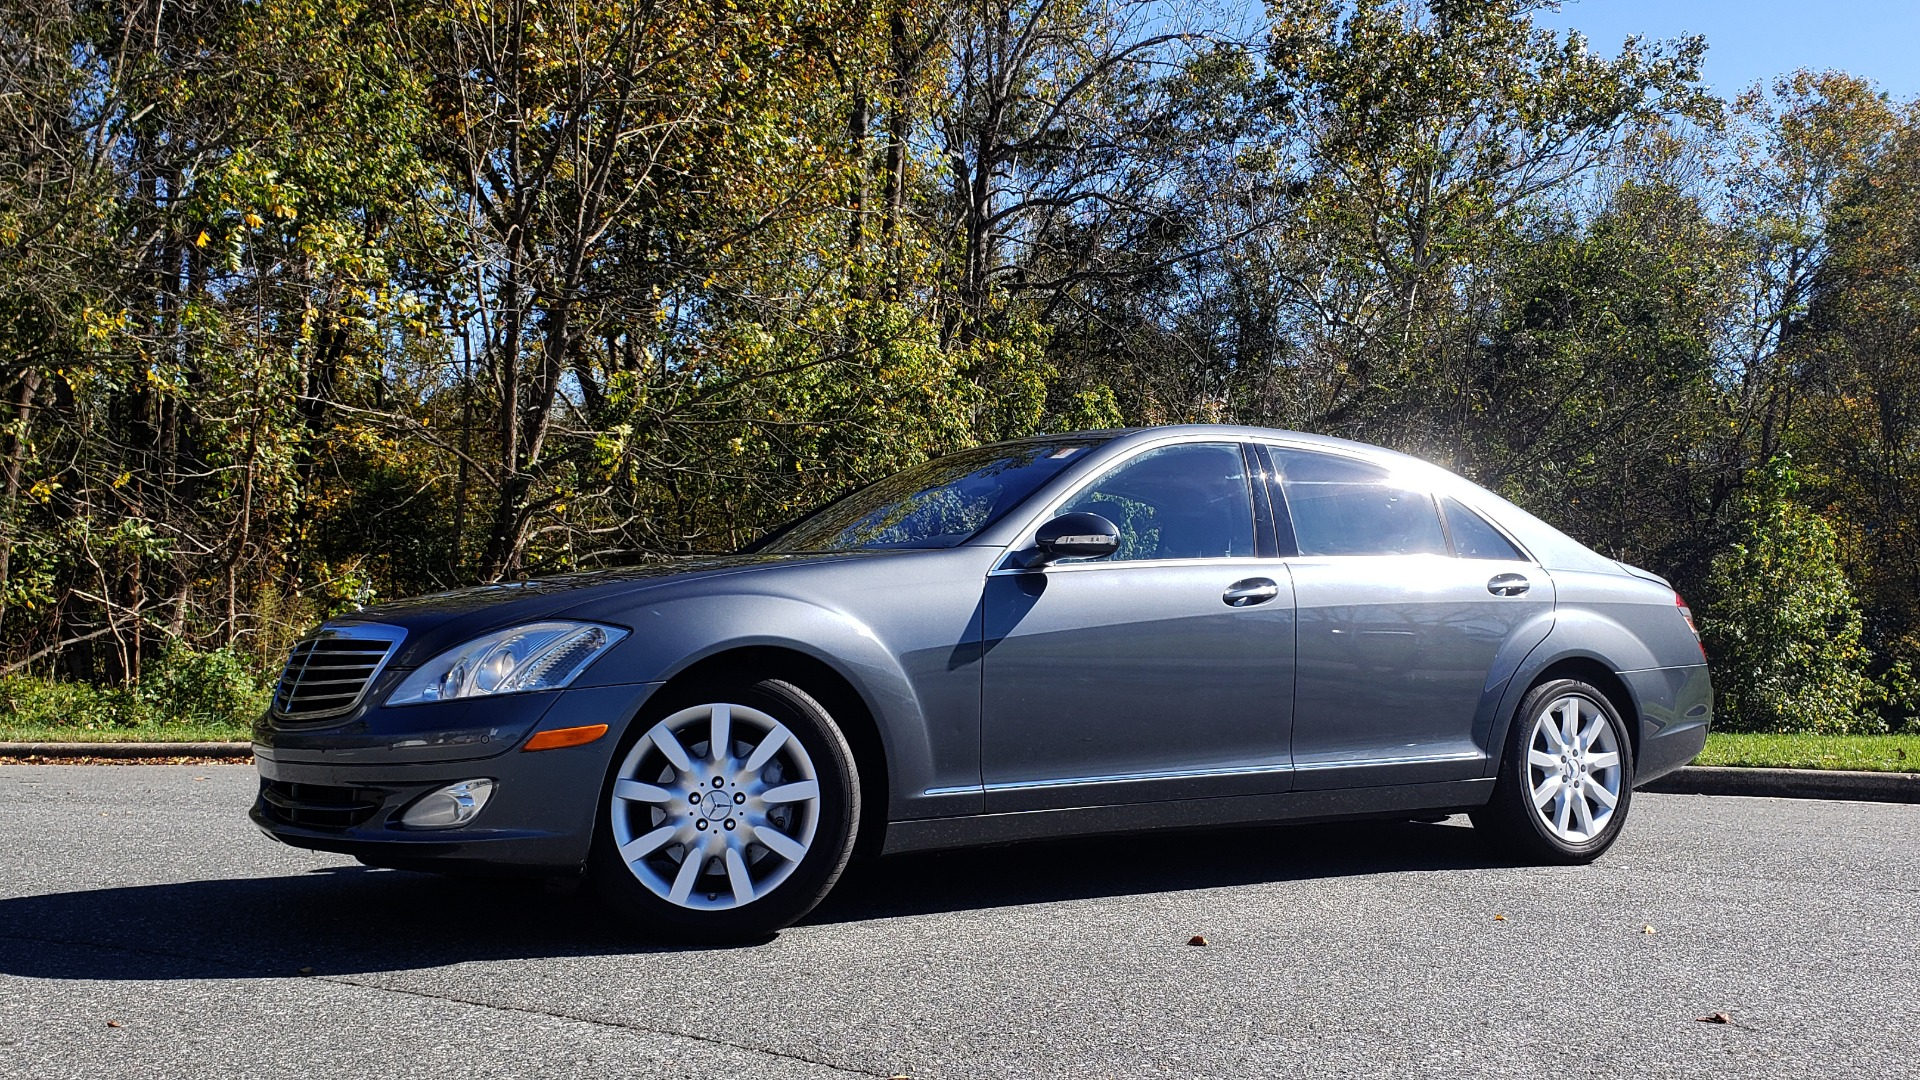 Used 2007 Mercedes-Benz S-CLASS S550 5.5L V8 / LWB / PREM 2 / NAV / SUNROOF / KEYLESS-GO for sale Sold at Formula Imports in Charlotte NC 28227 2